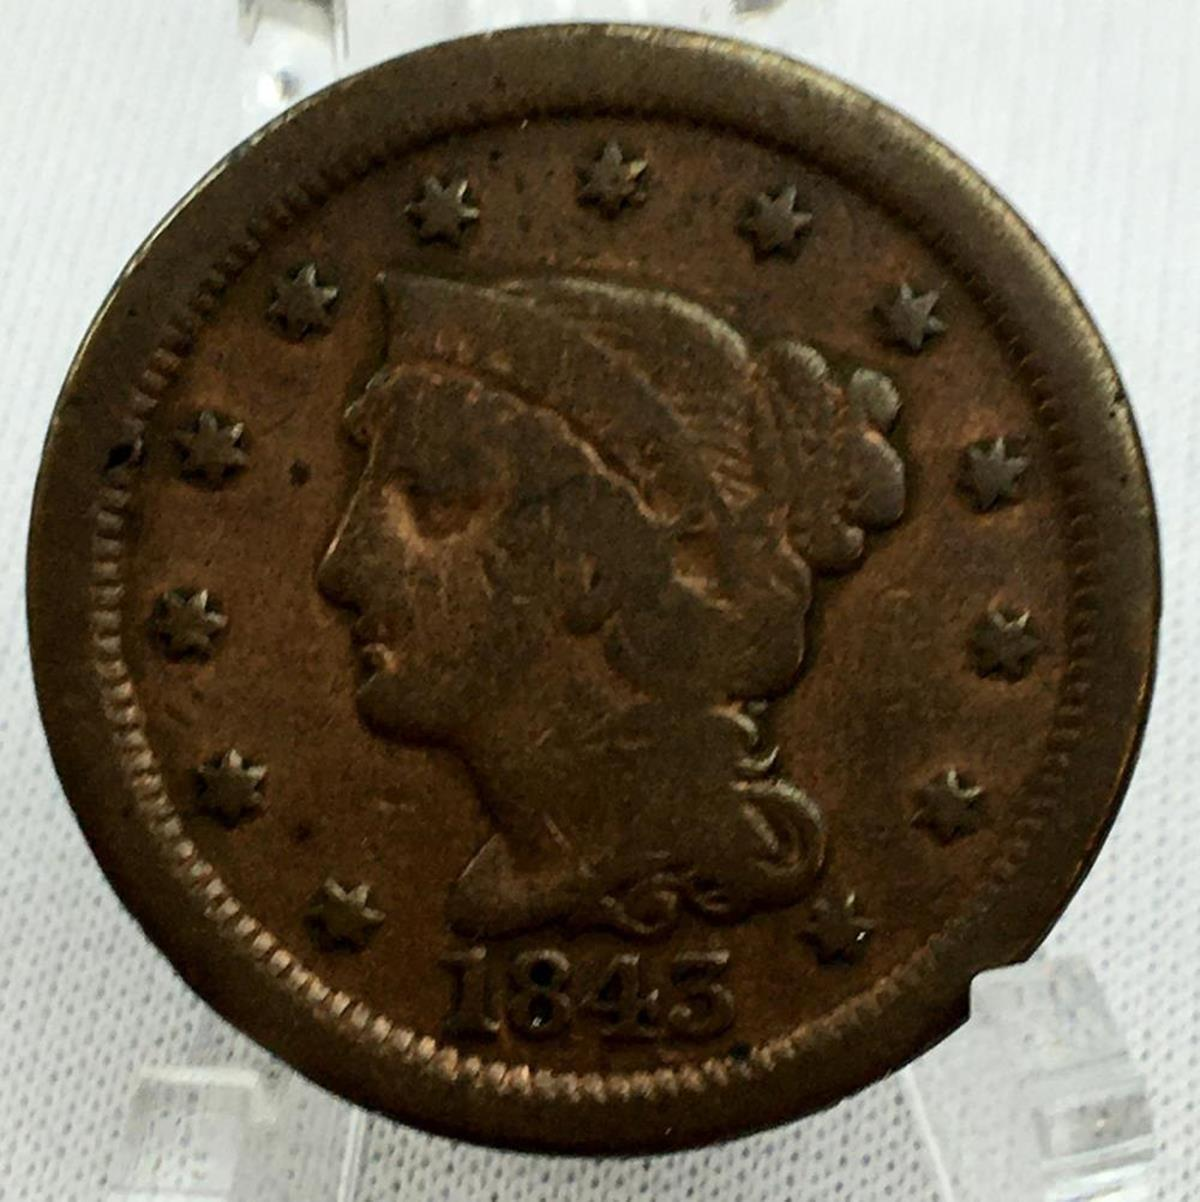 1843 US 1c Braided Hair Liberty Head Large Cent (Petite Head / Large Letters)